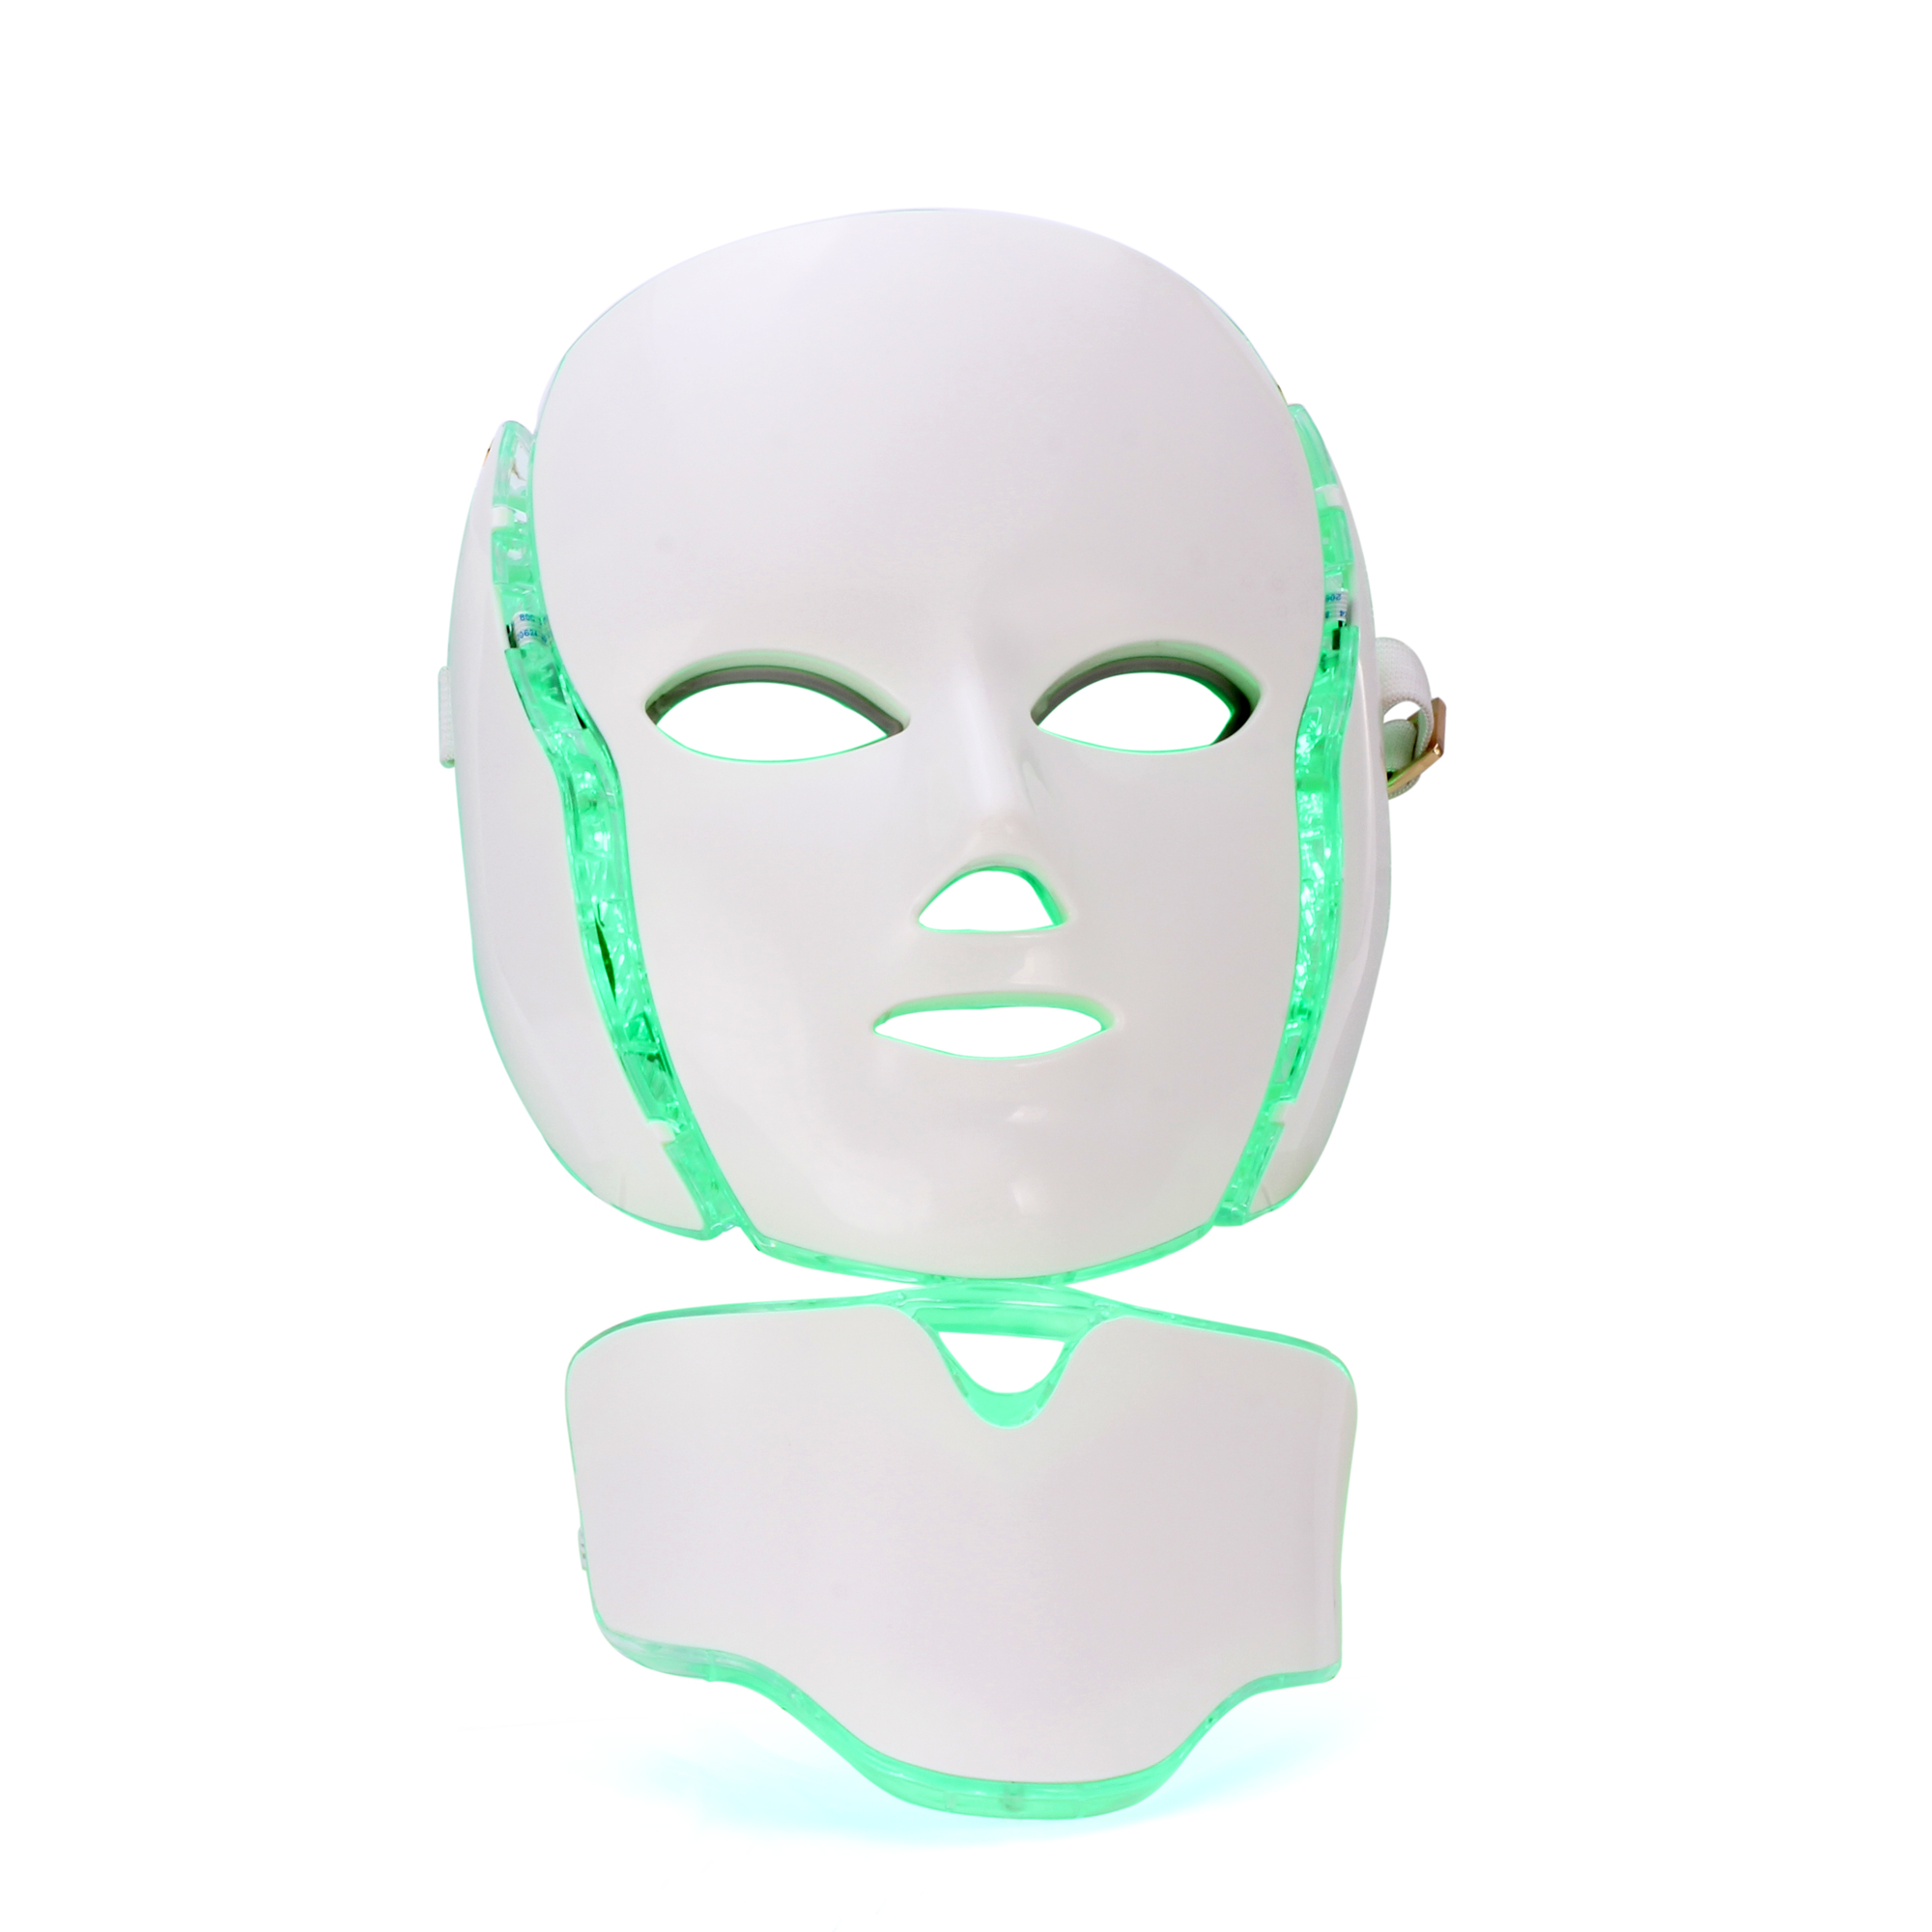 led light therapy Facial Beauty mask3